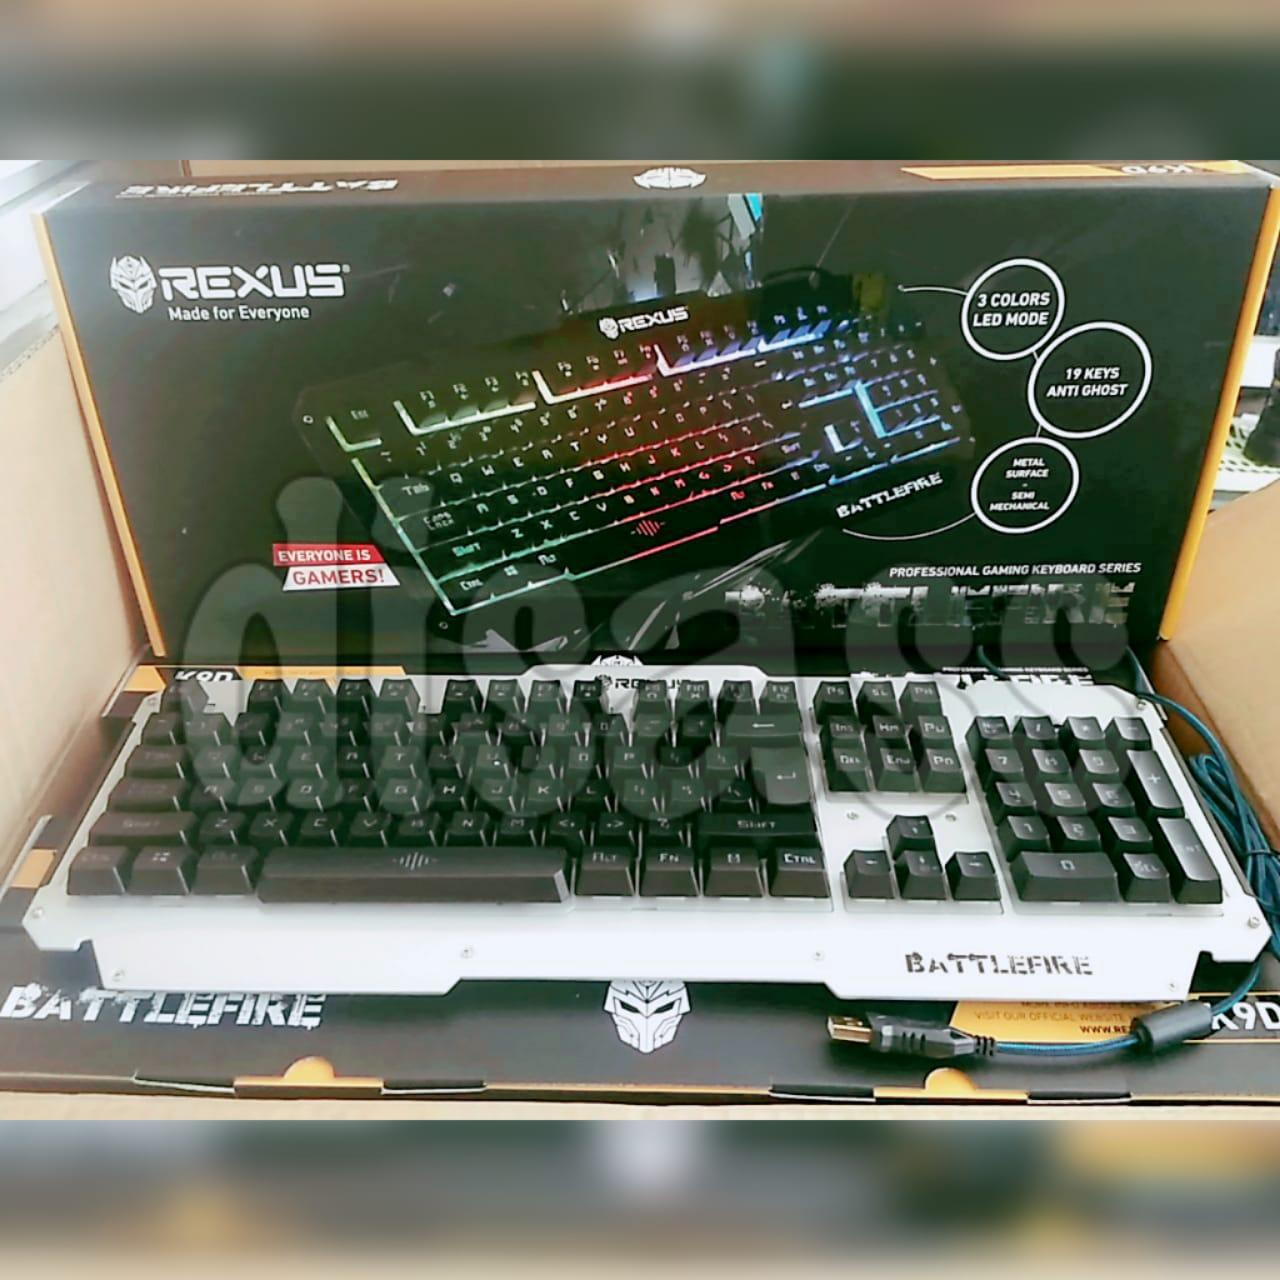 https://www.lazada.co.id/products/rexus-k9d-keyboard-gaming-usb-with-3-colors-rainbow-backlight-disass-jogja-i513436807-s693470151.html